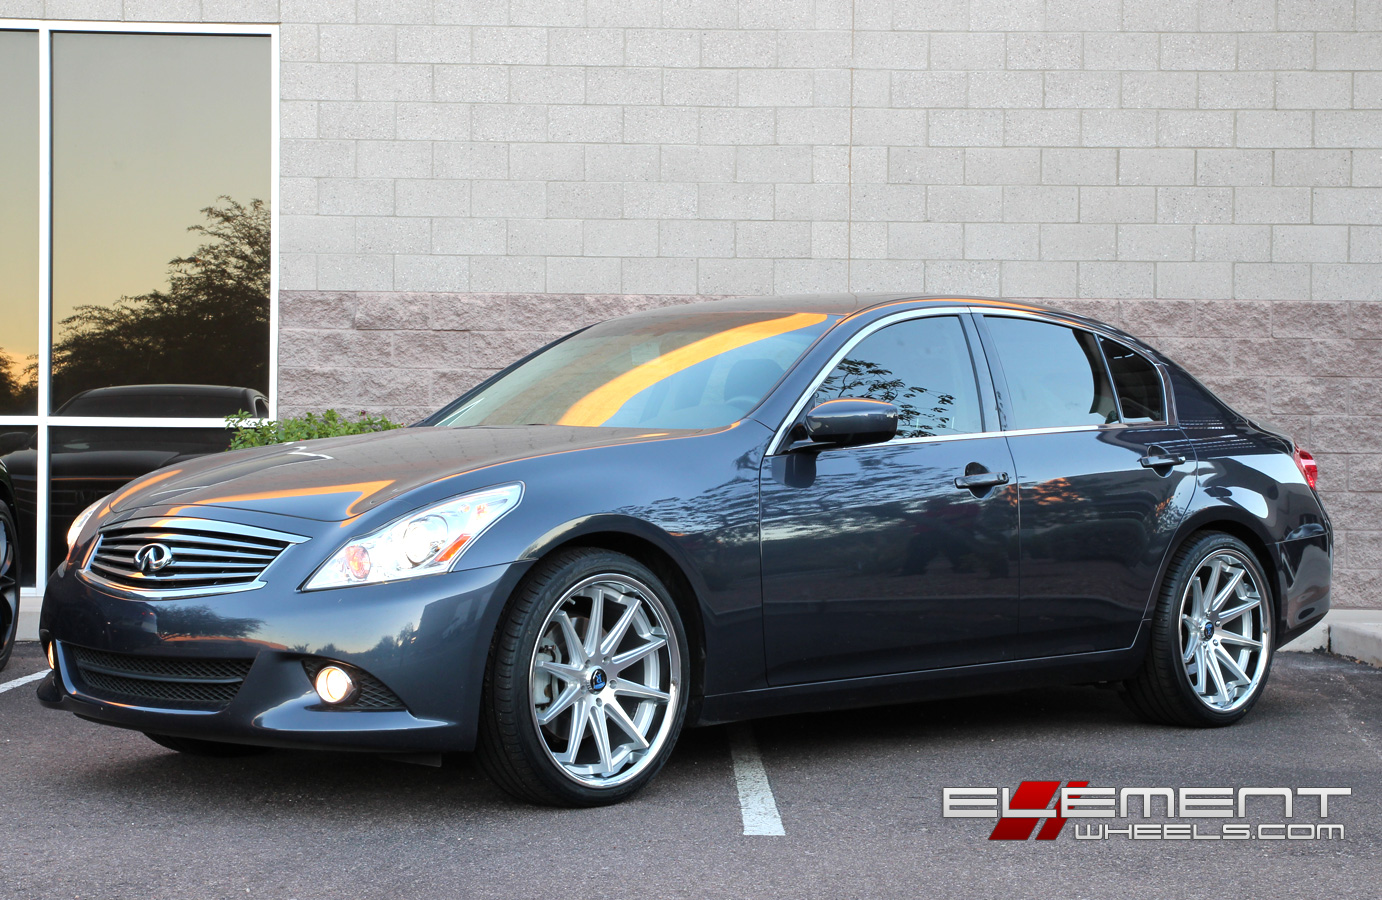 Staggered Concave Rohana Rc10 Silver Machined On 2017 Infiniti G37 Sedan W Specs Element Wheels